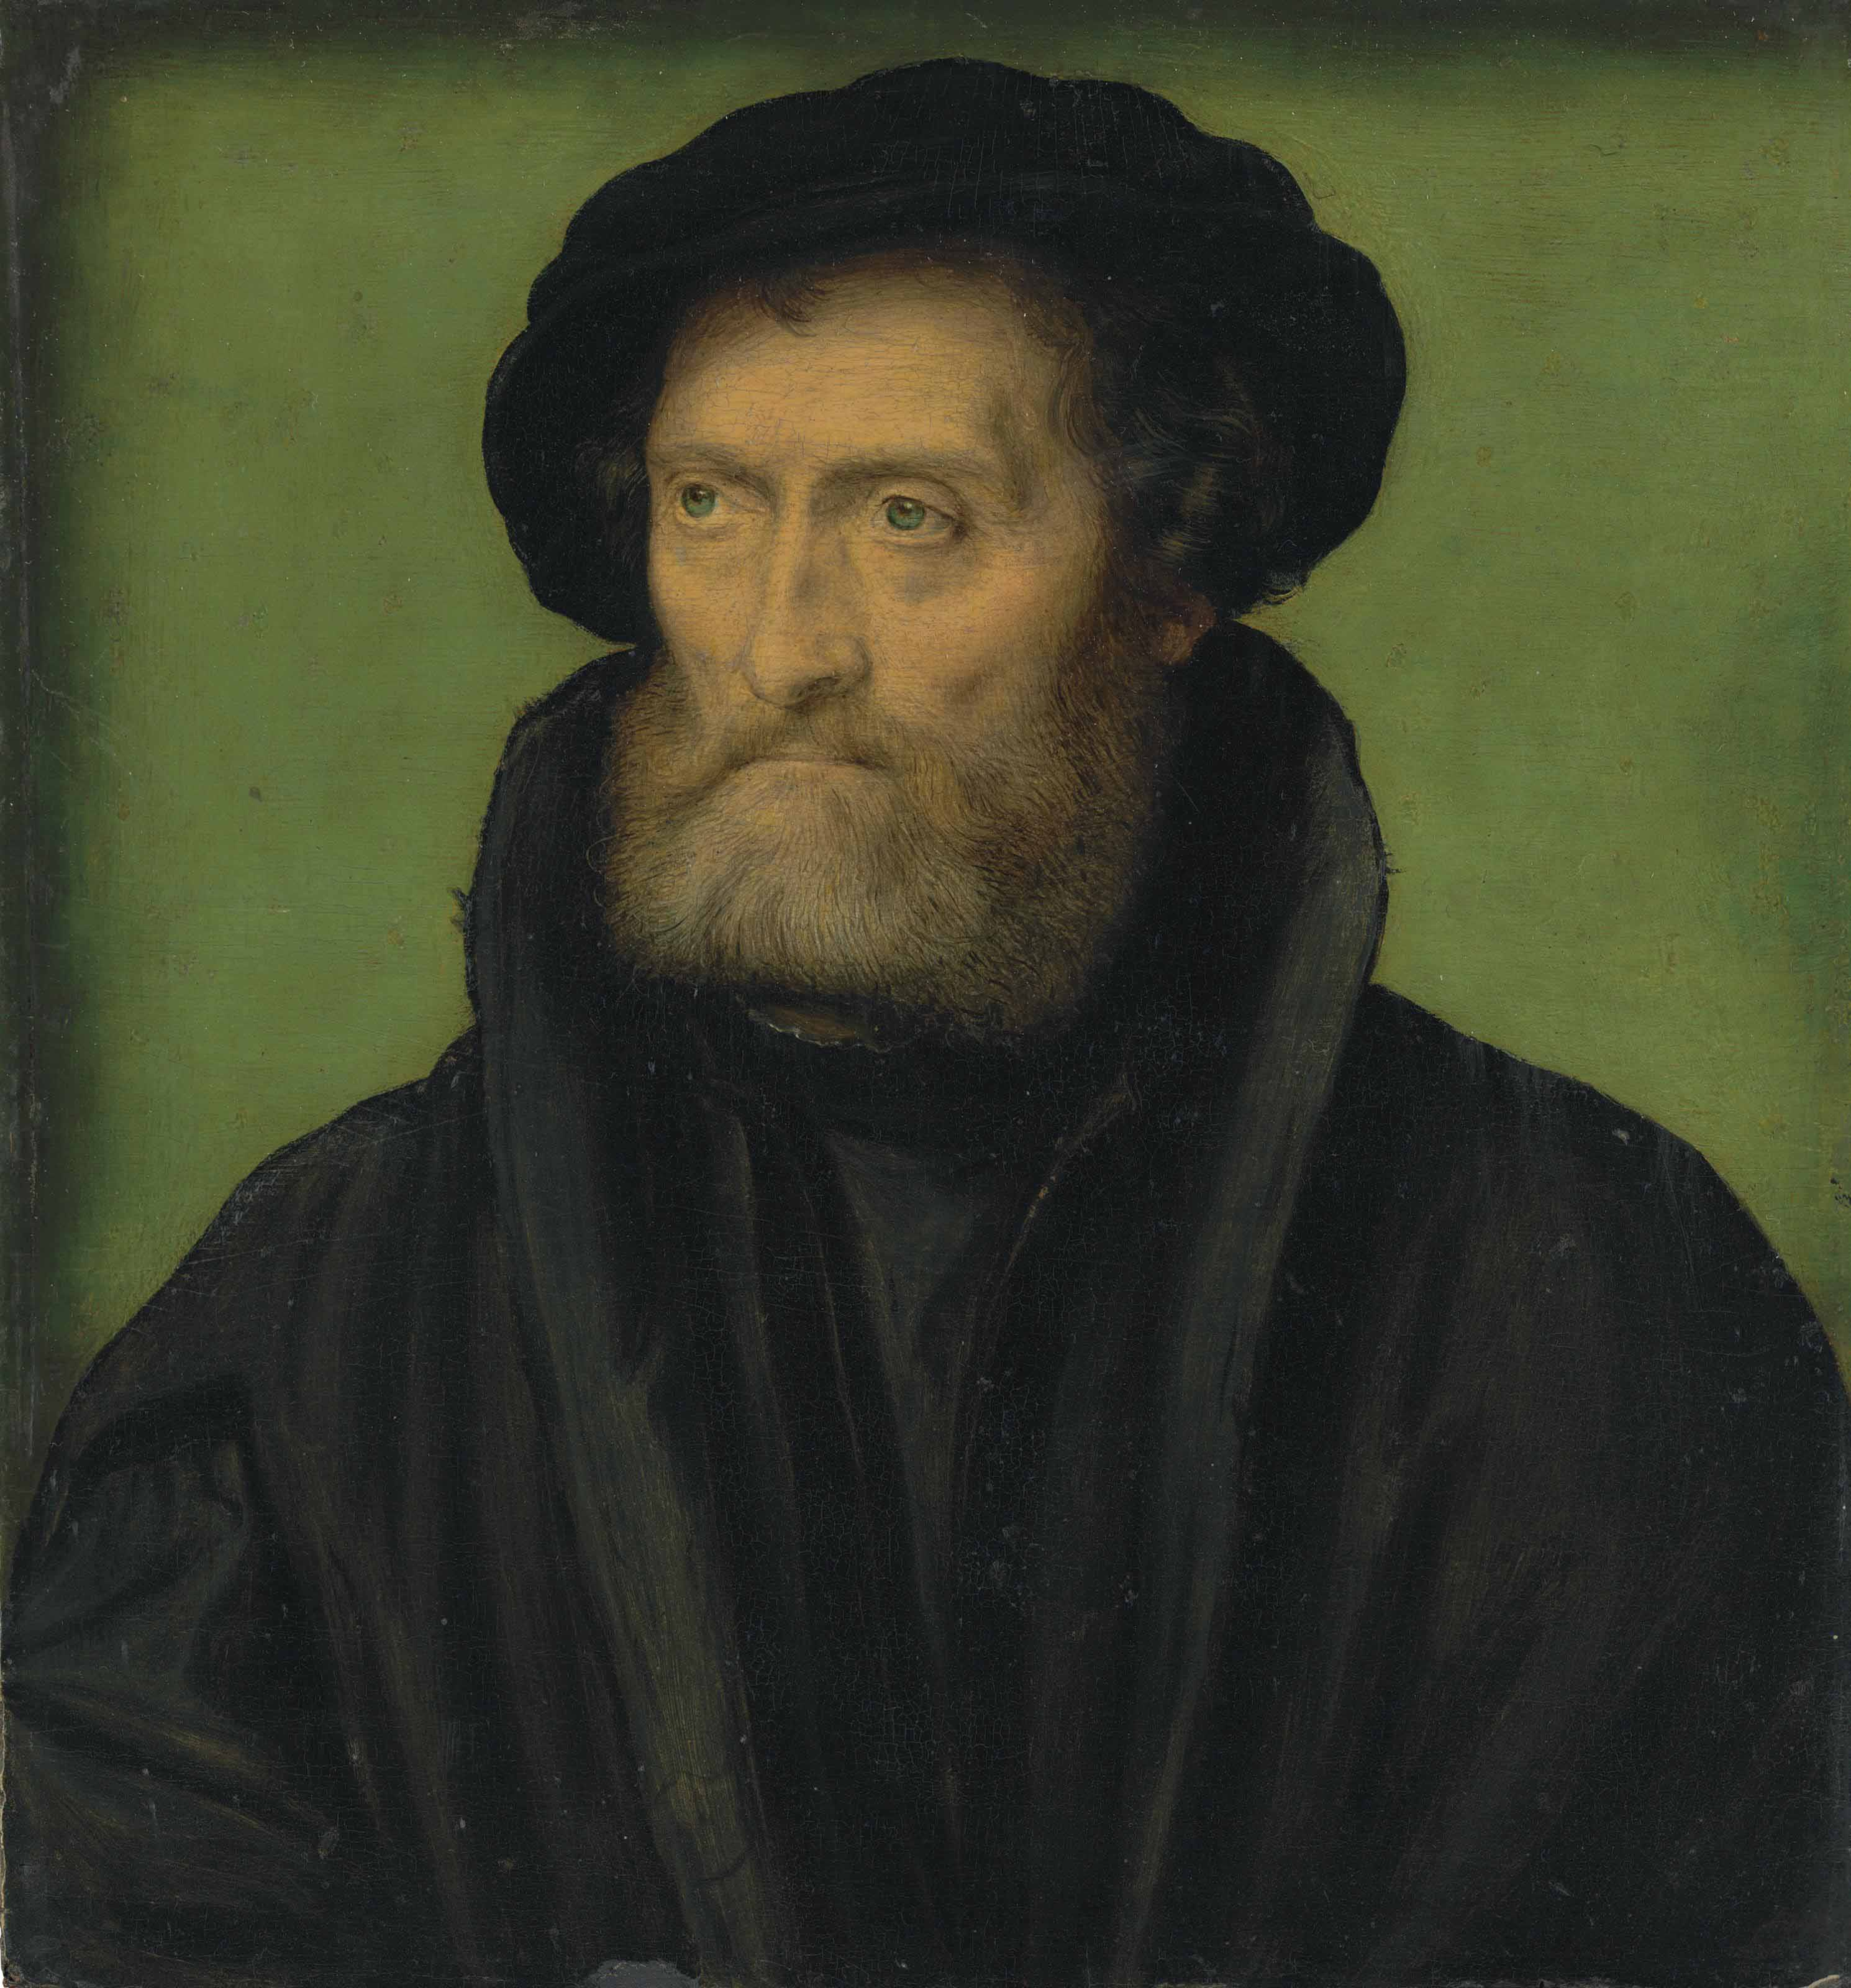 Portrait of a merchant, traditionally identified as Theodore Beza (1519-1605)